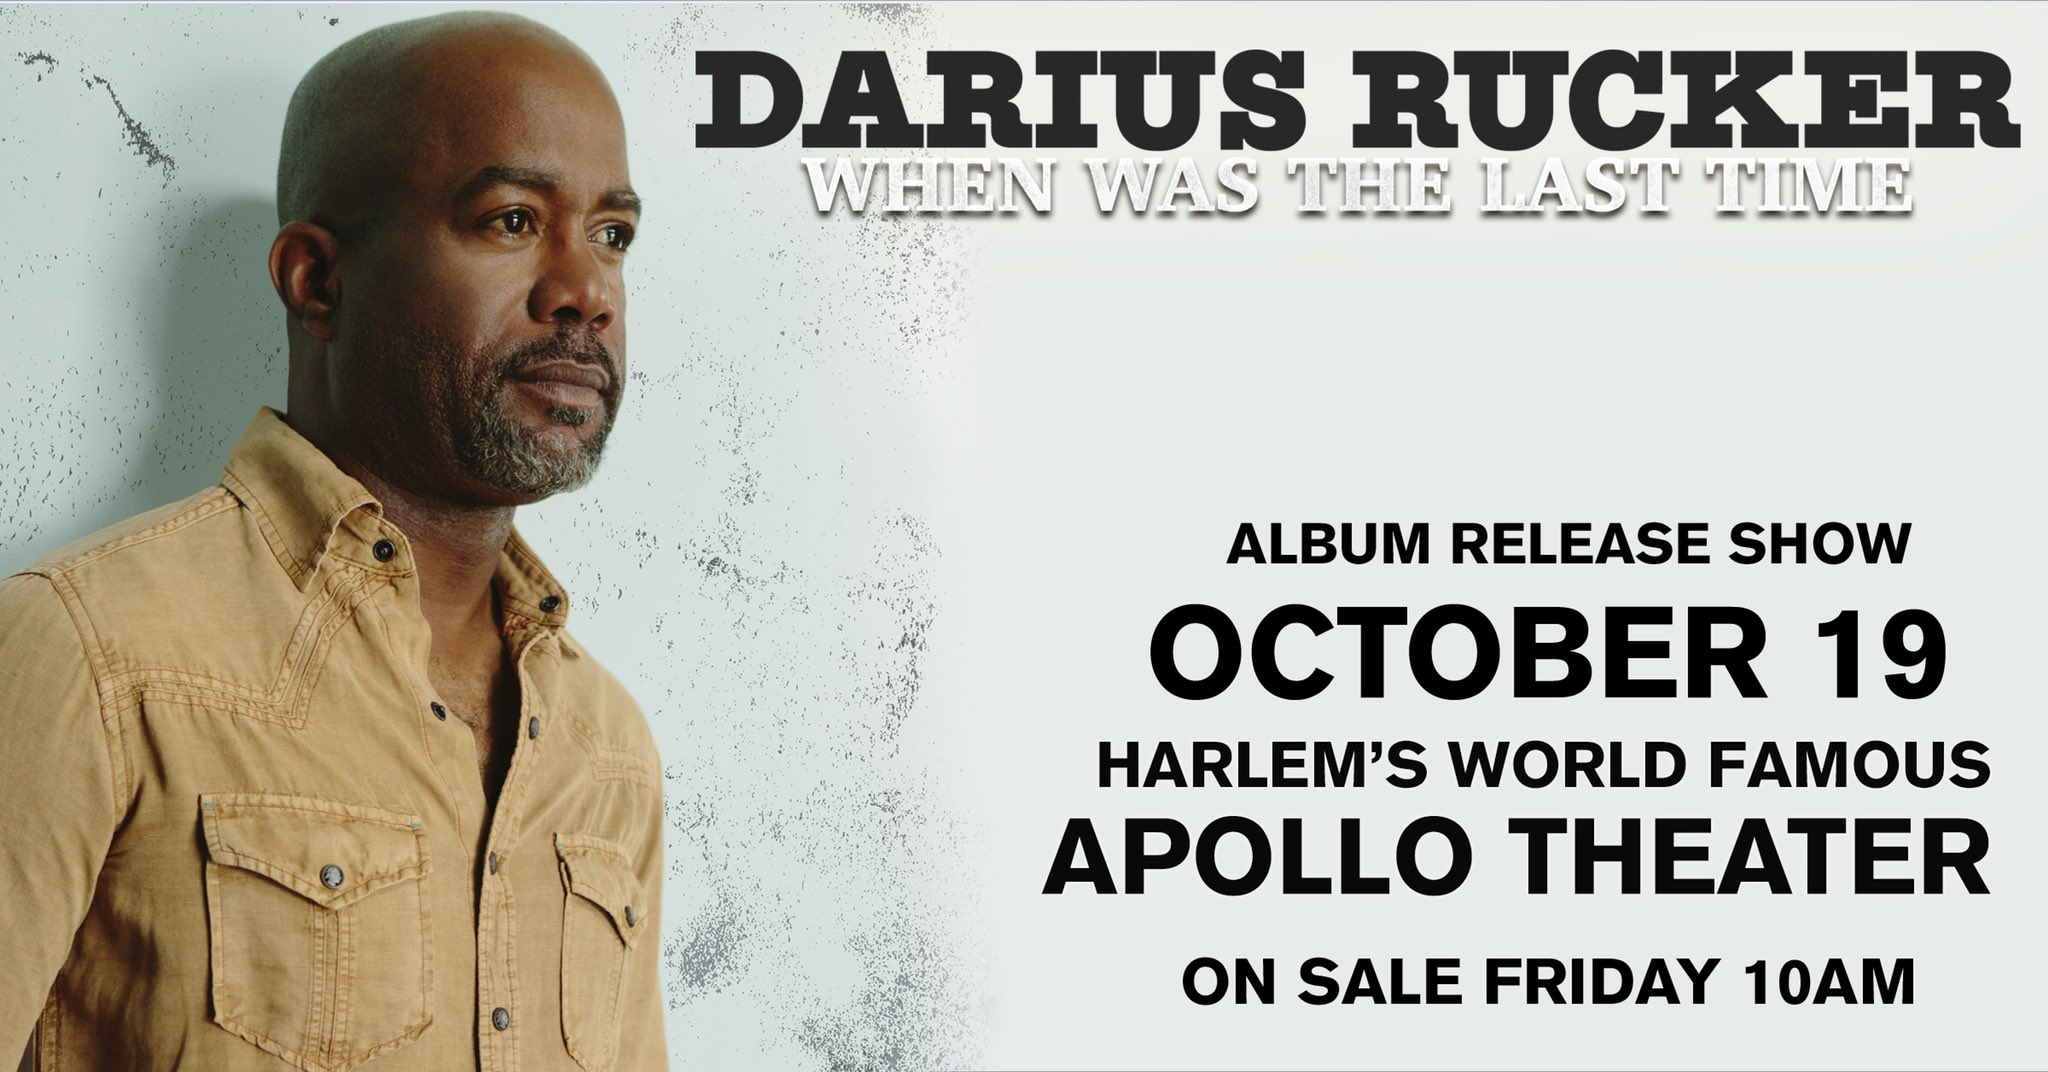 Darius Rucker On Twitter Nyc Whenwasthelasttime Album Release